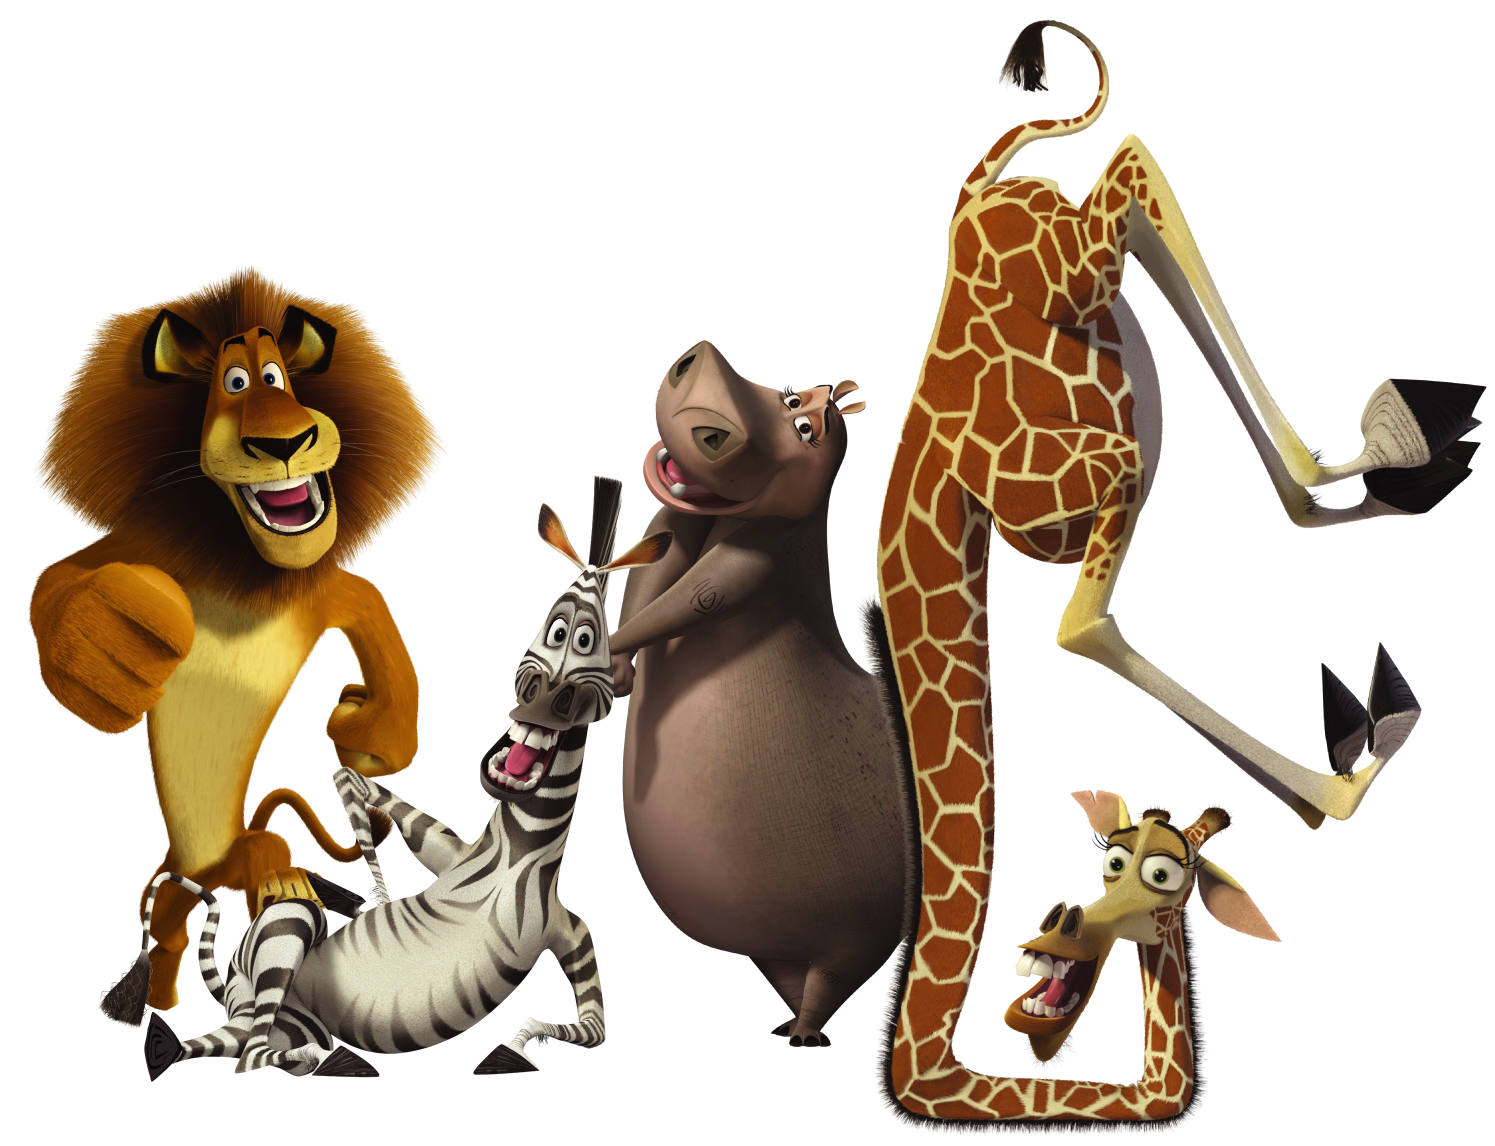 alex marty gloria melman madagascar